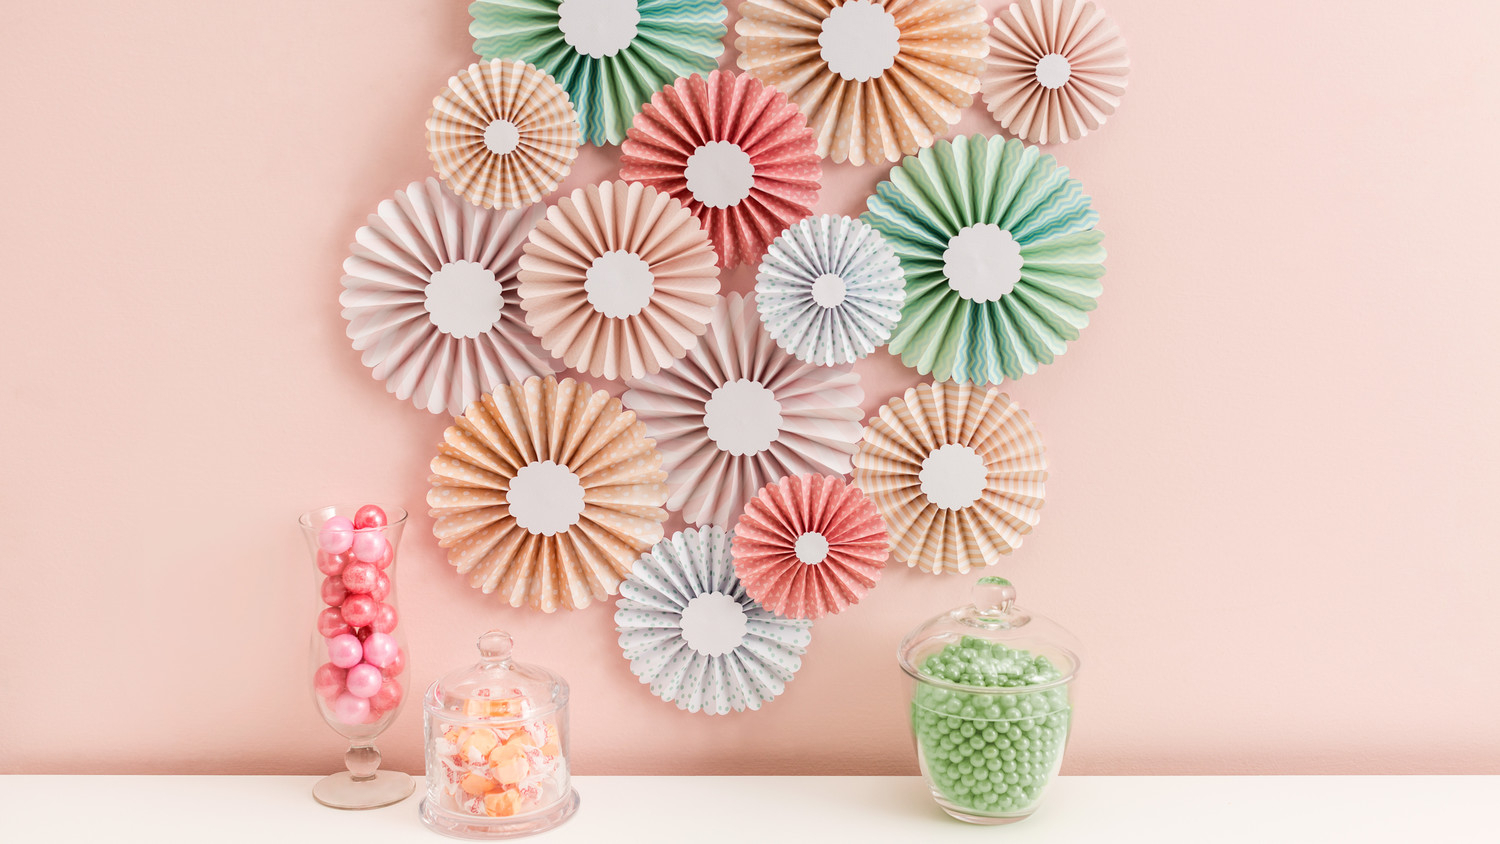 Amazing Deal On Willa Arlo Interiors Sunburst Wall Mirror Wrlo5570 Inside Preferred Starburst Wall Decor By Willa Arlo Interiors (View 8 of 20)